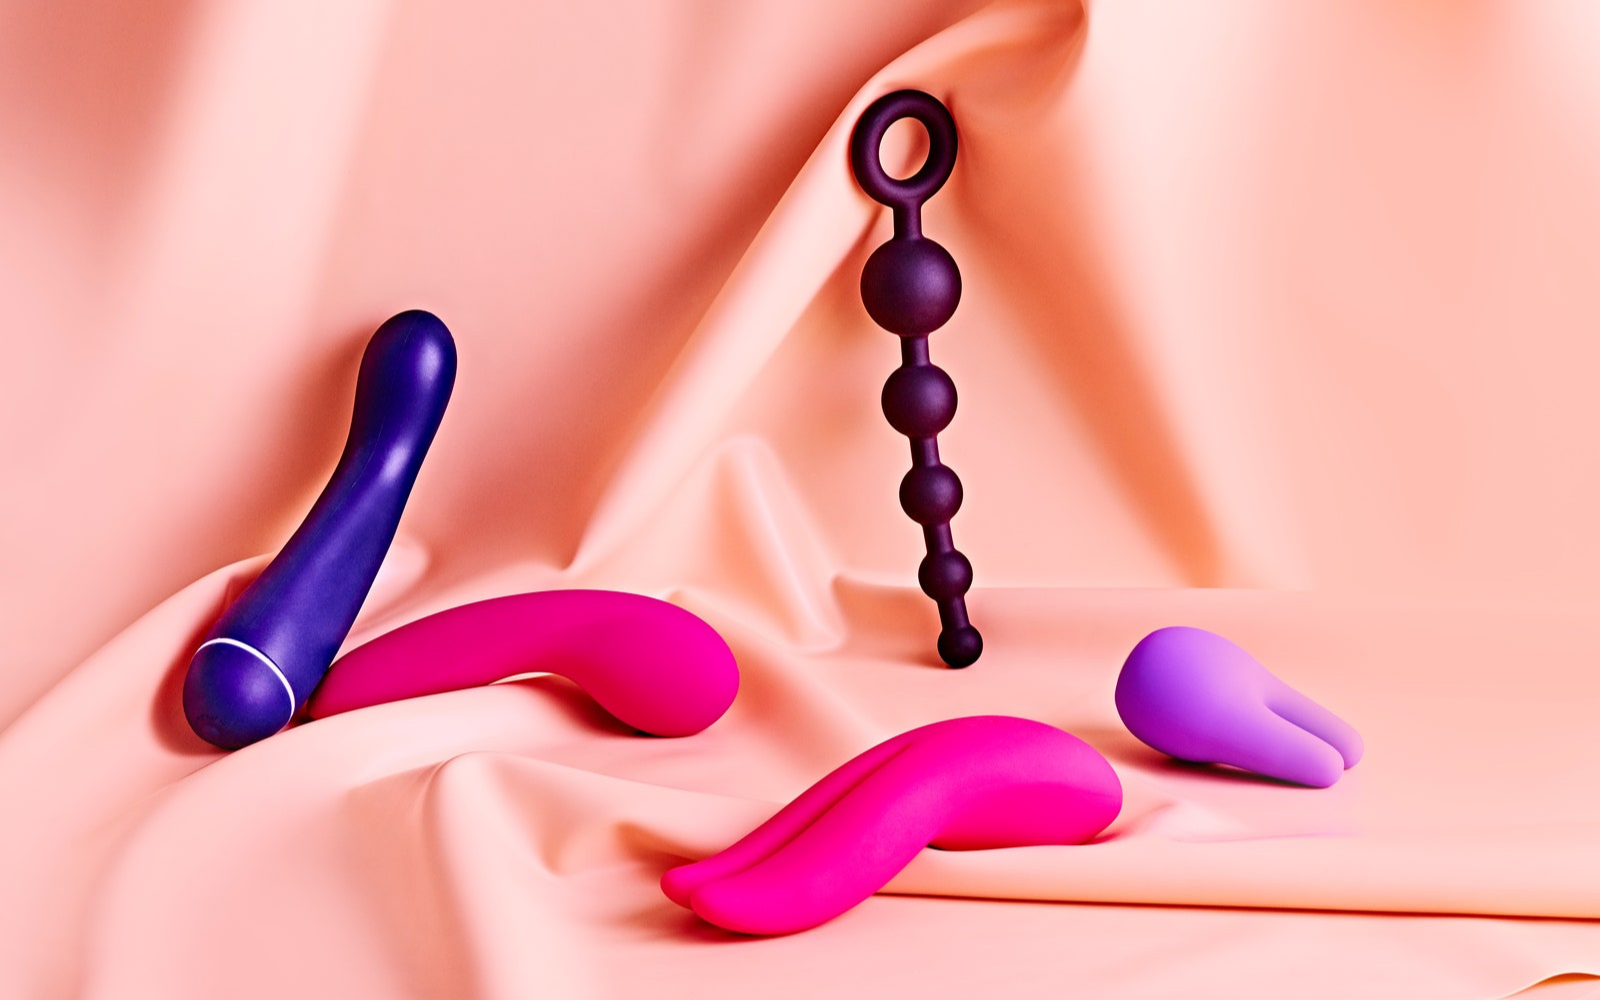 Sex toys to enhance sexual intimacy